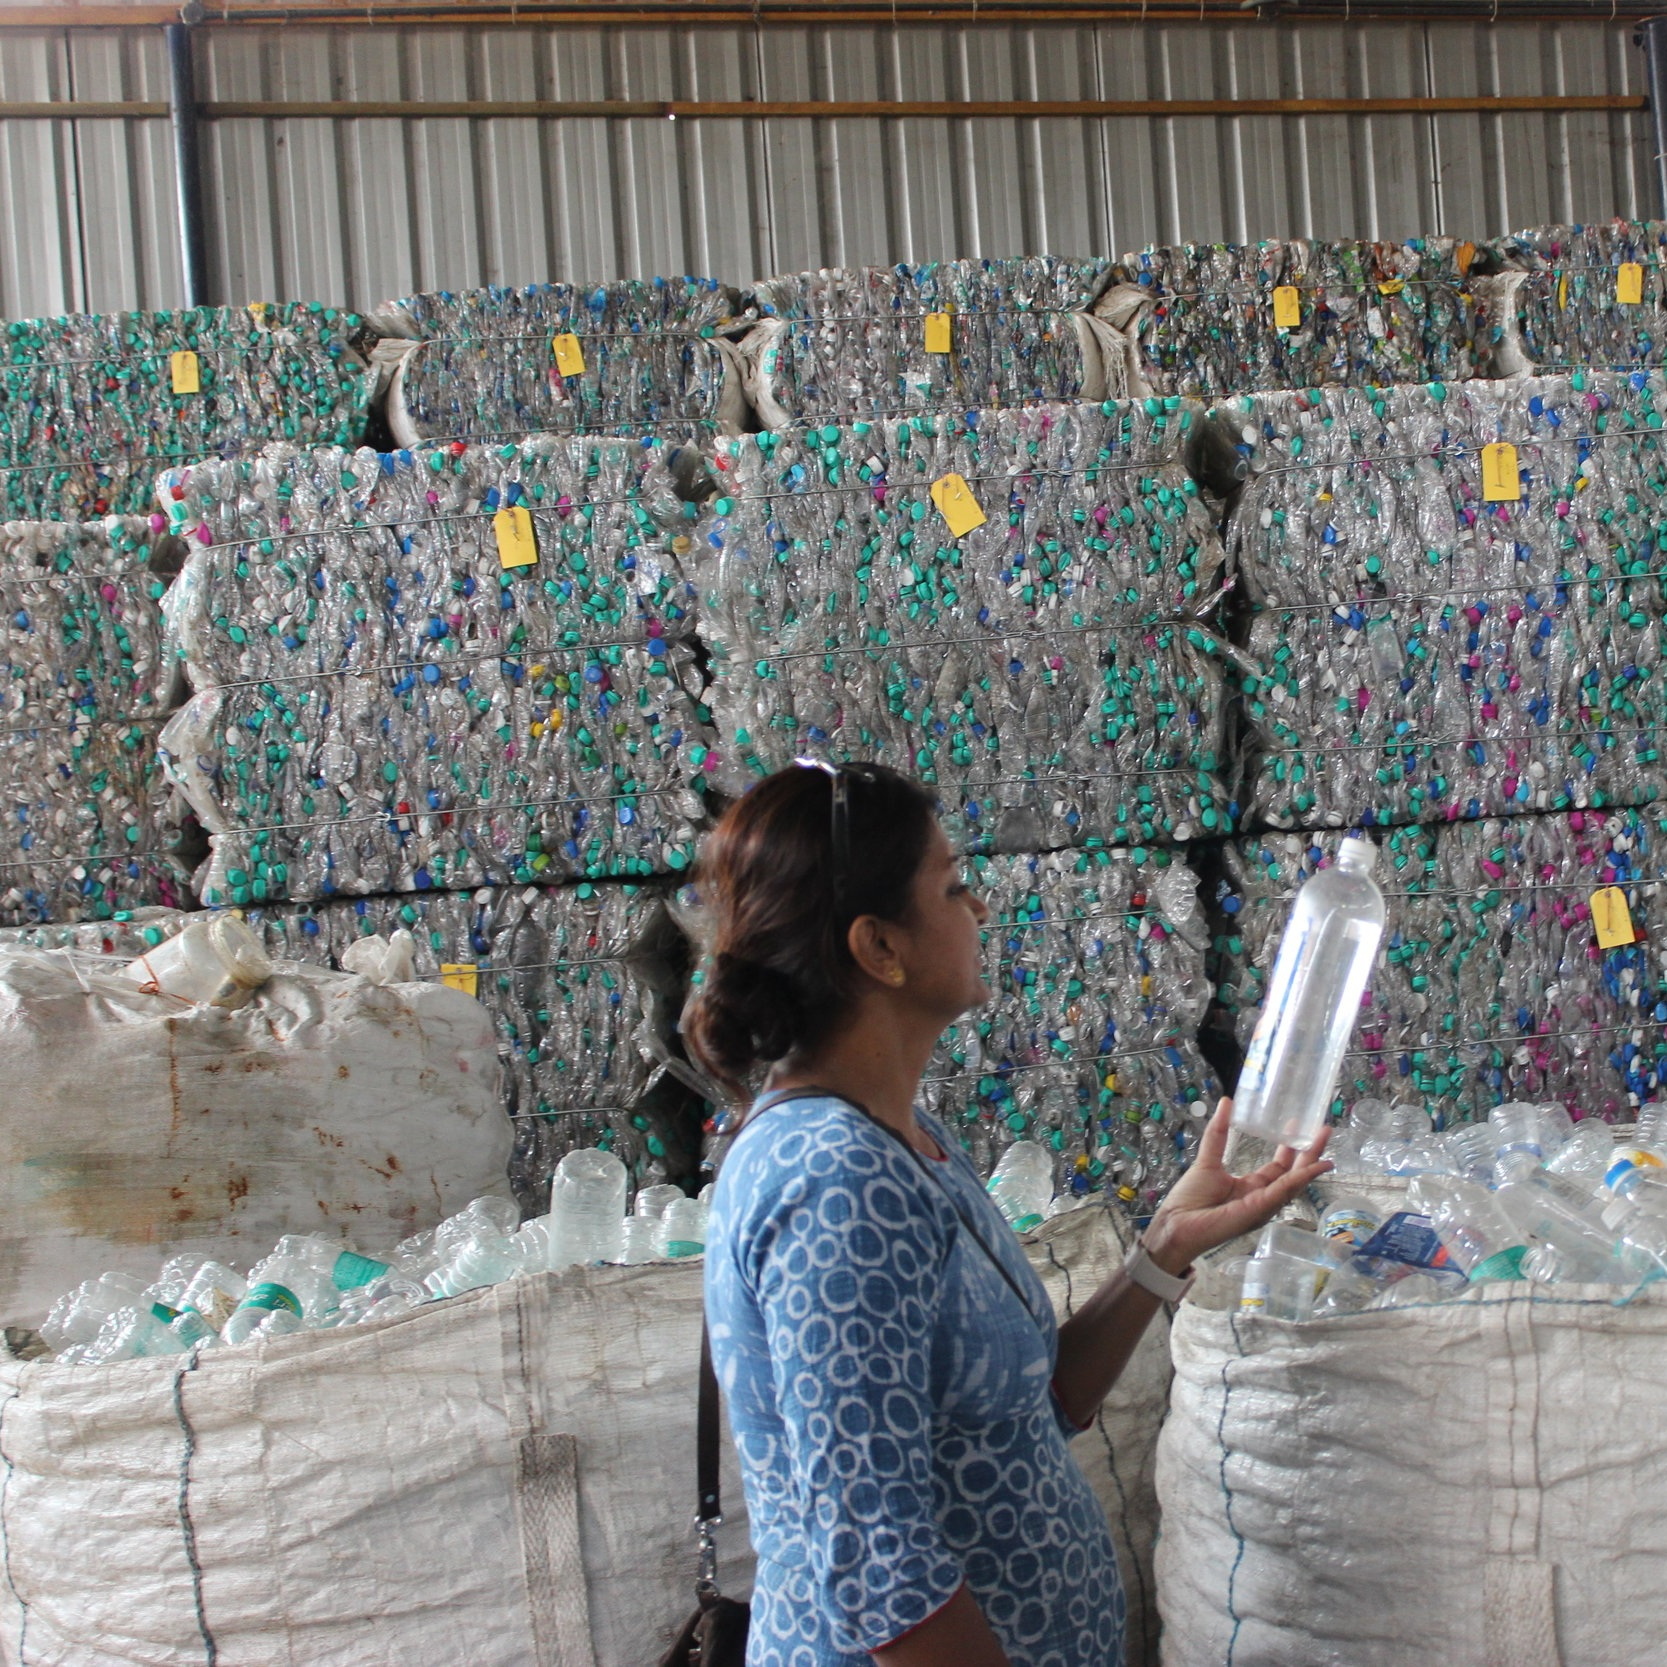 Plastics+For+Change+Recycling+Centre